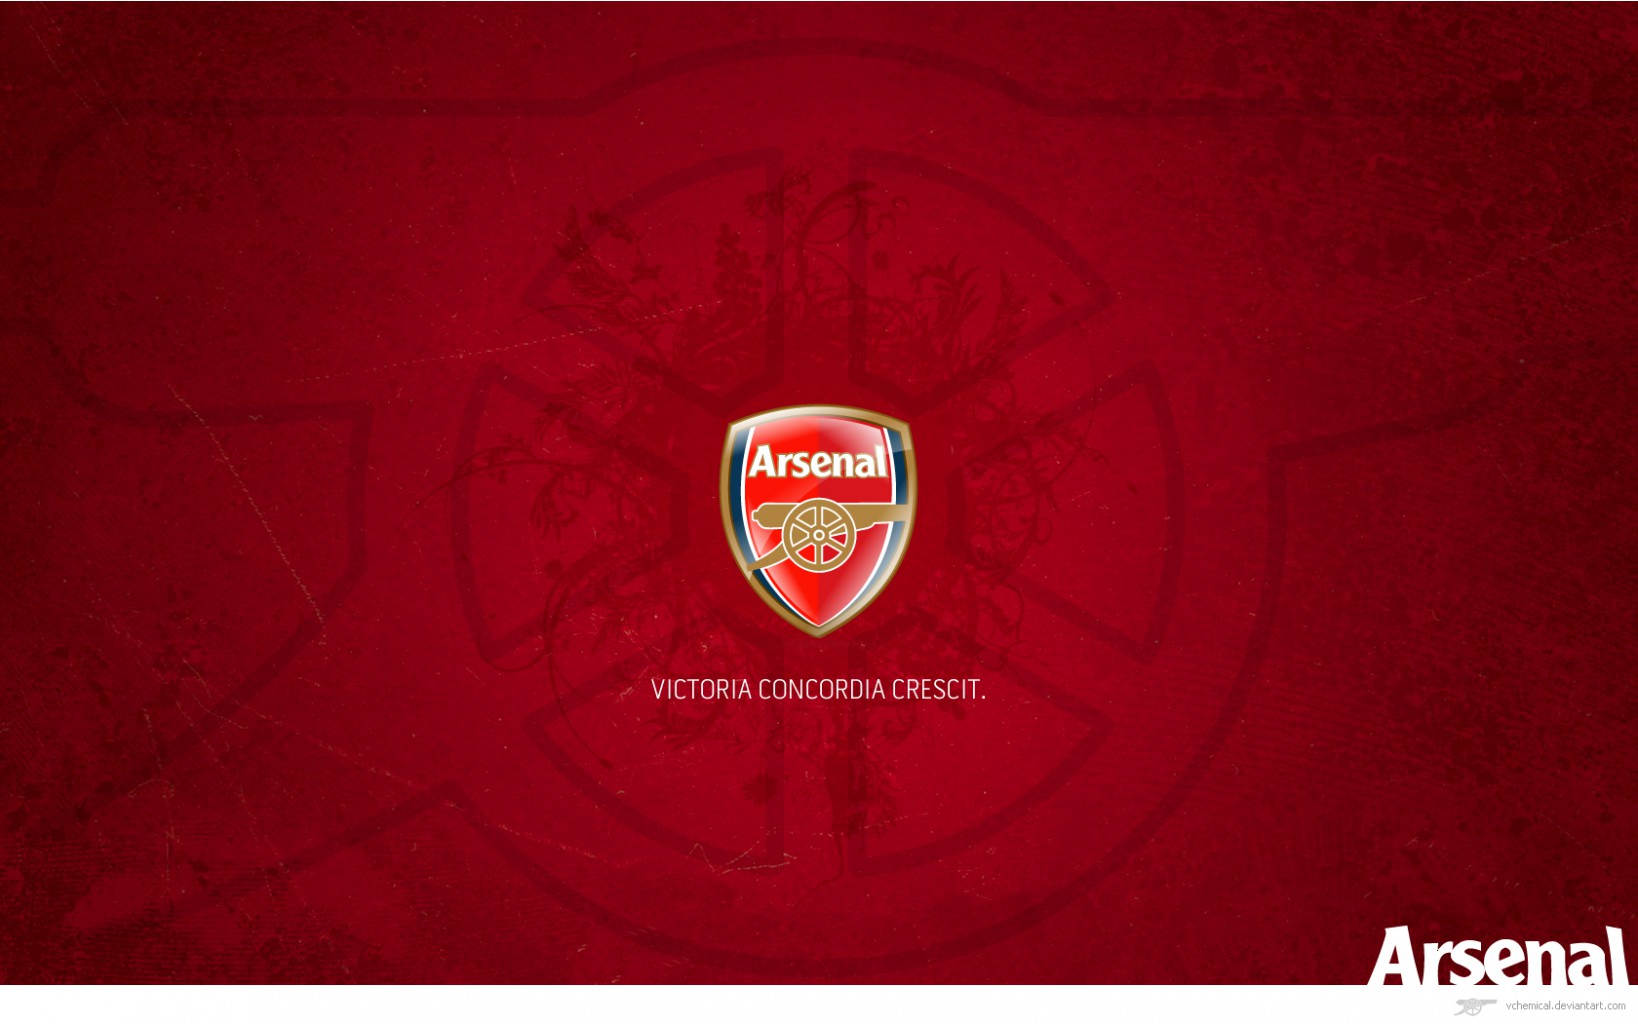 Fc-arsenal-wallpaper-red-by-vchemical.jpg